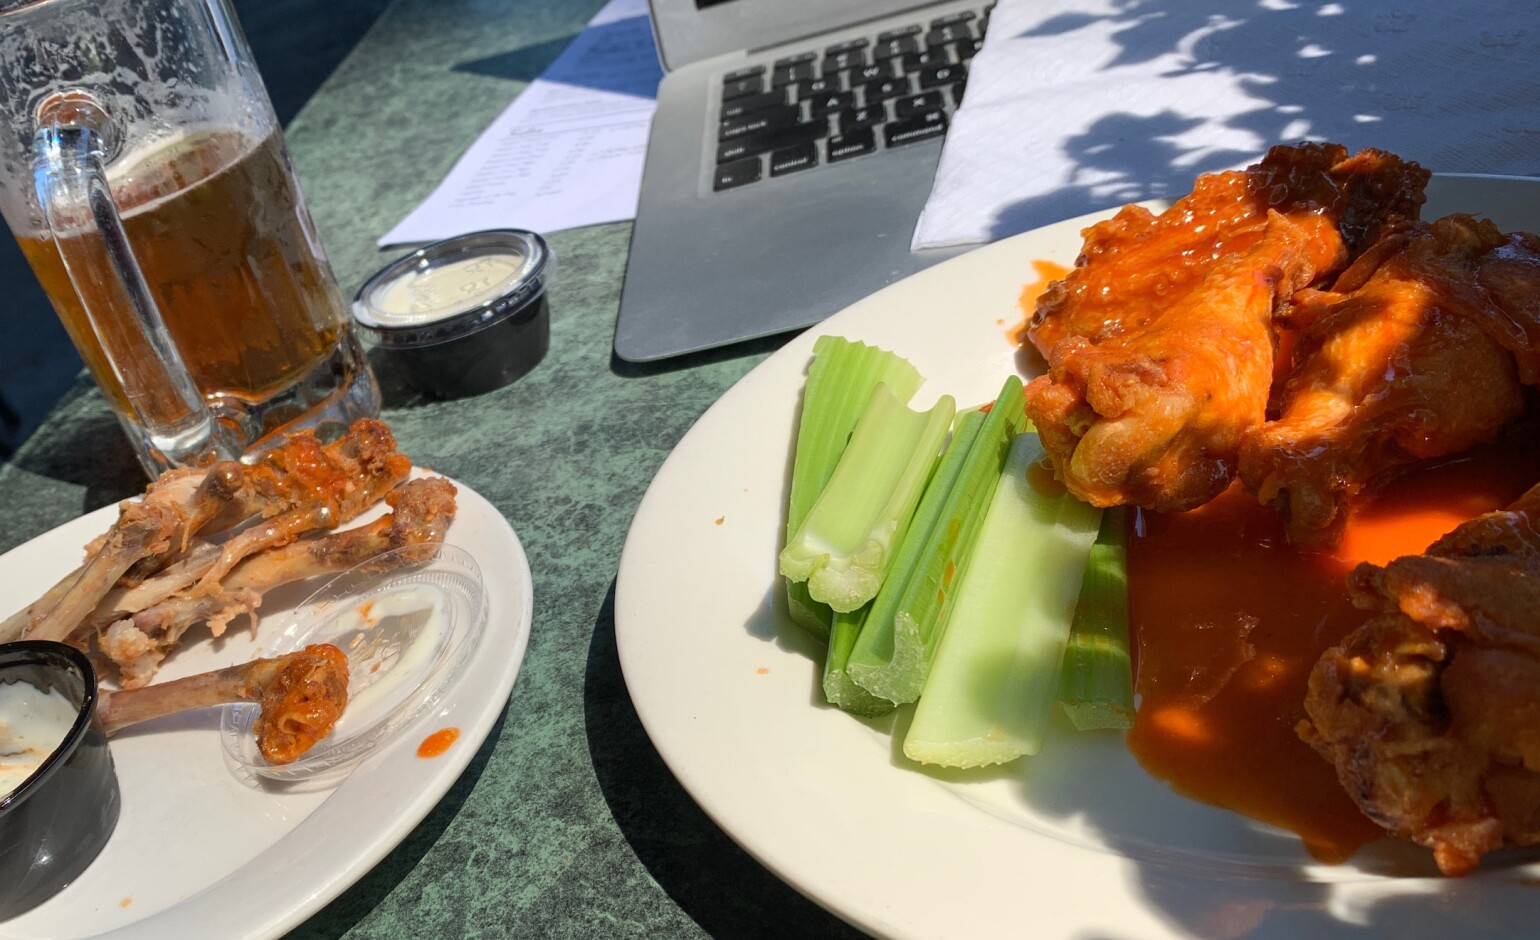 Andrew Cuomo S Anti Science War On Buffalo Wings